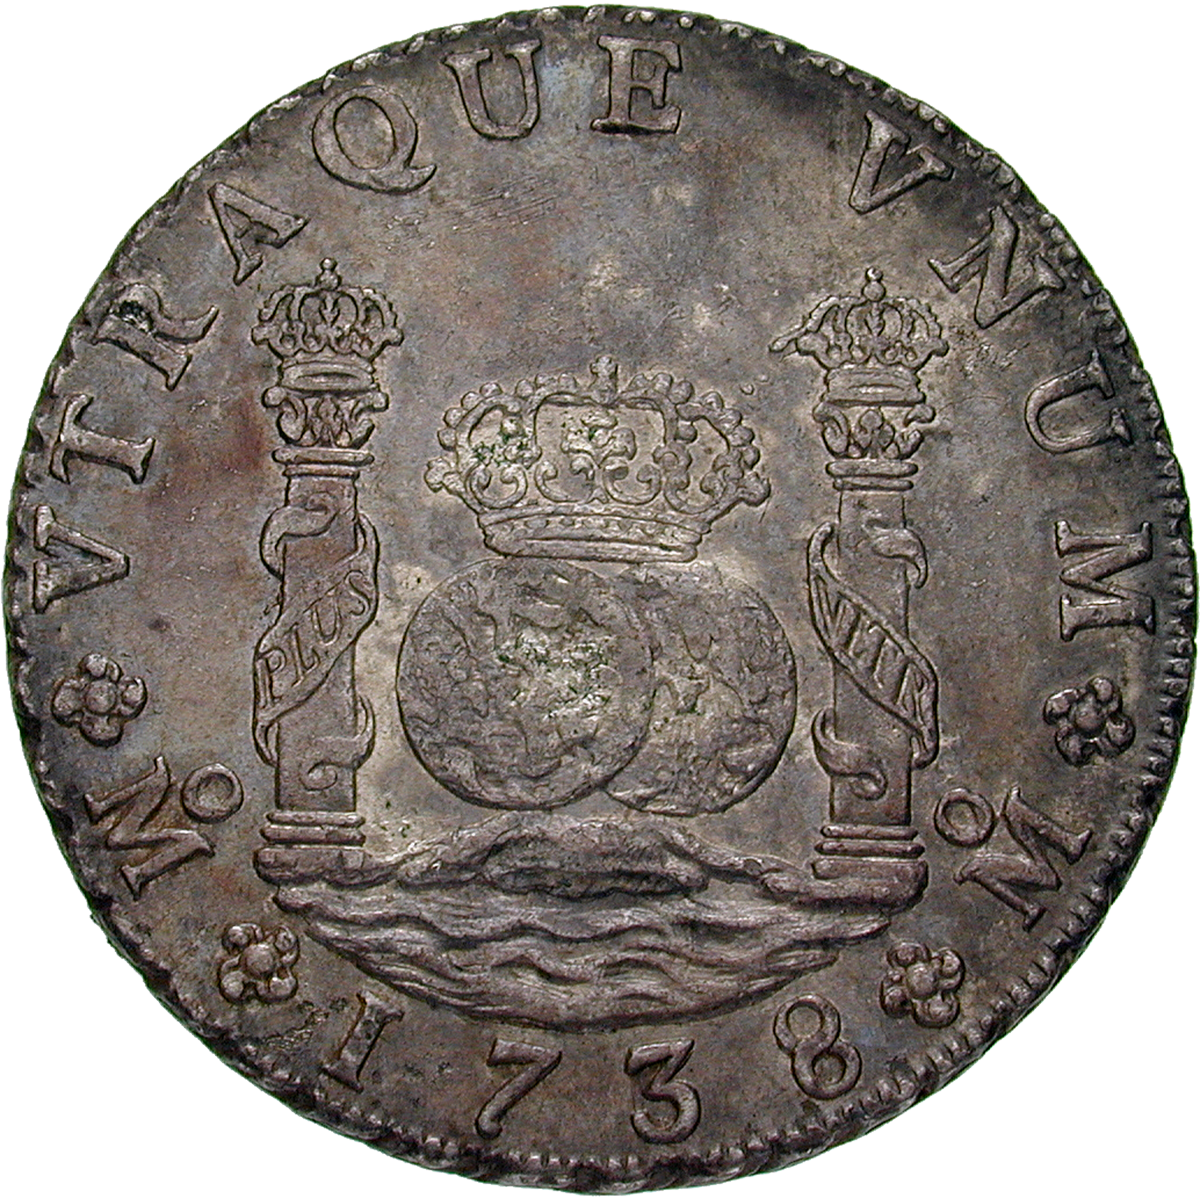 Viceroyalty of New Spain, Philip V, Real de a ocho (Peso) 1738 (reverse)